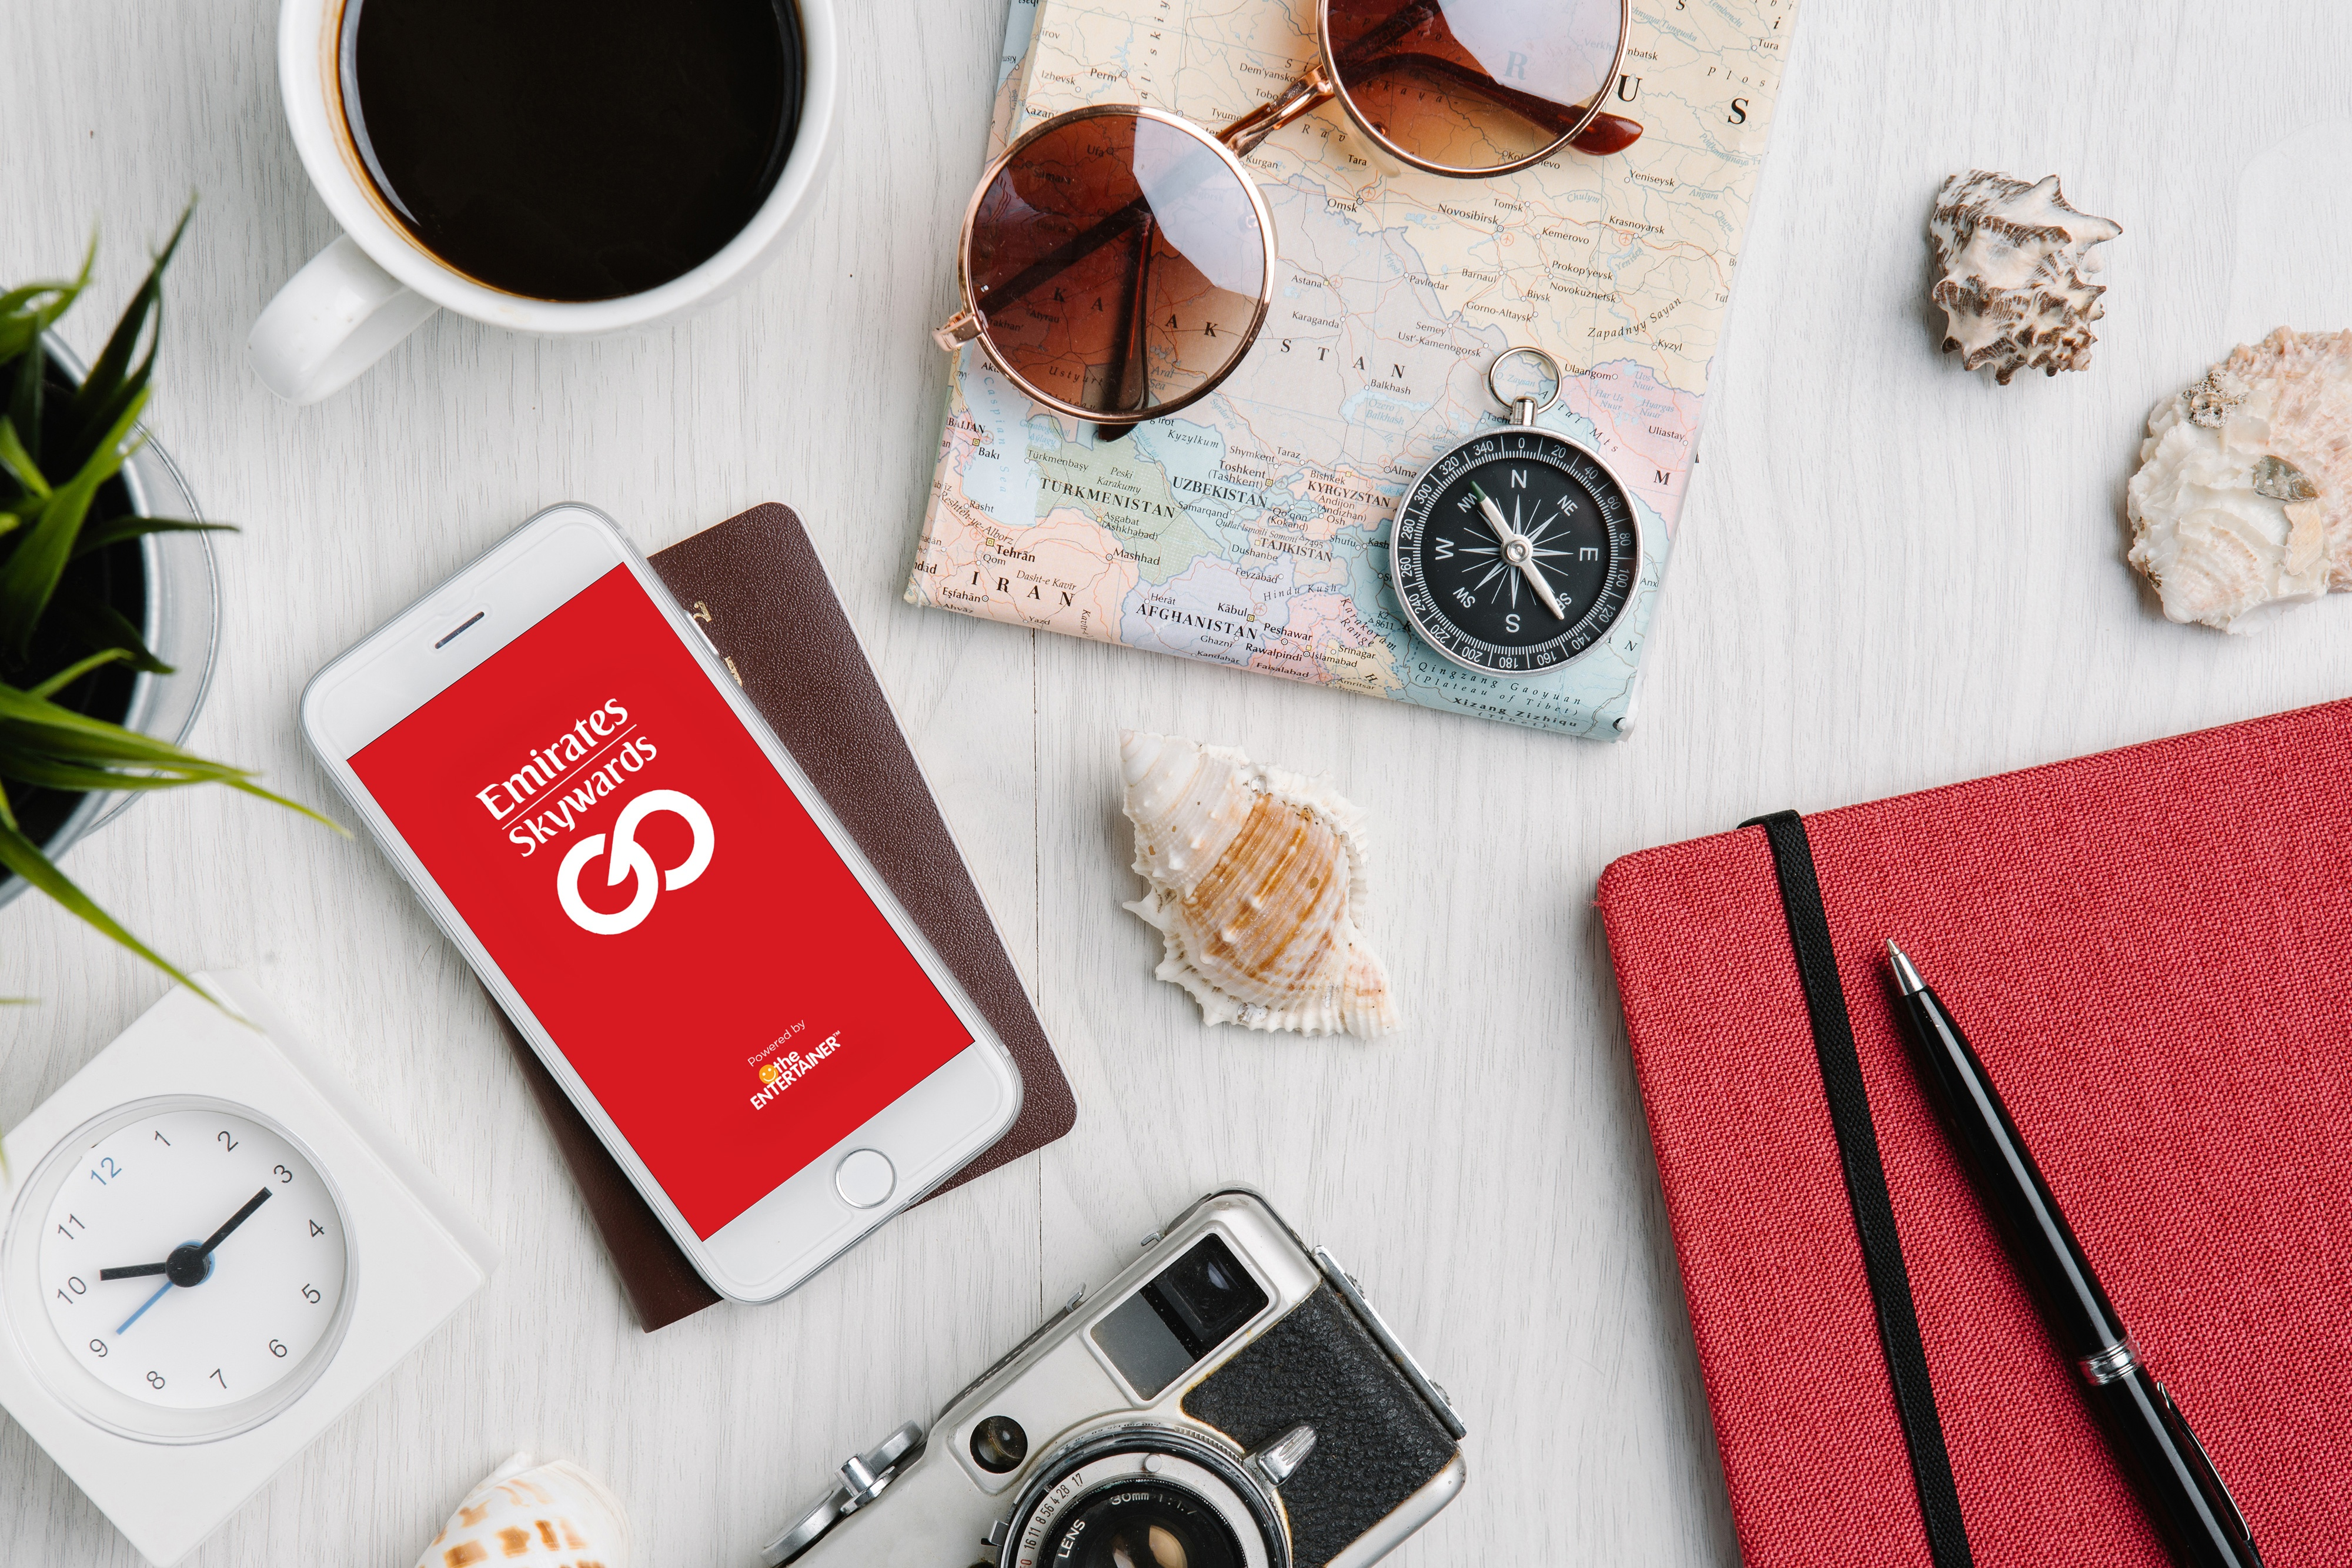 The ENTERTAINER partners with Emirates Skywards to introduce new cutting-edge mobile travel App